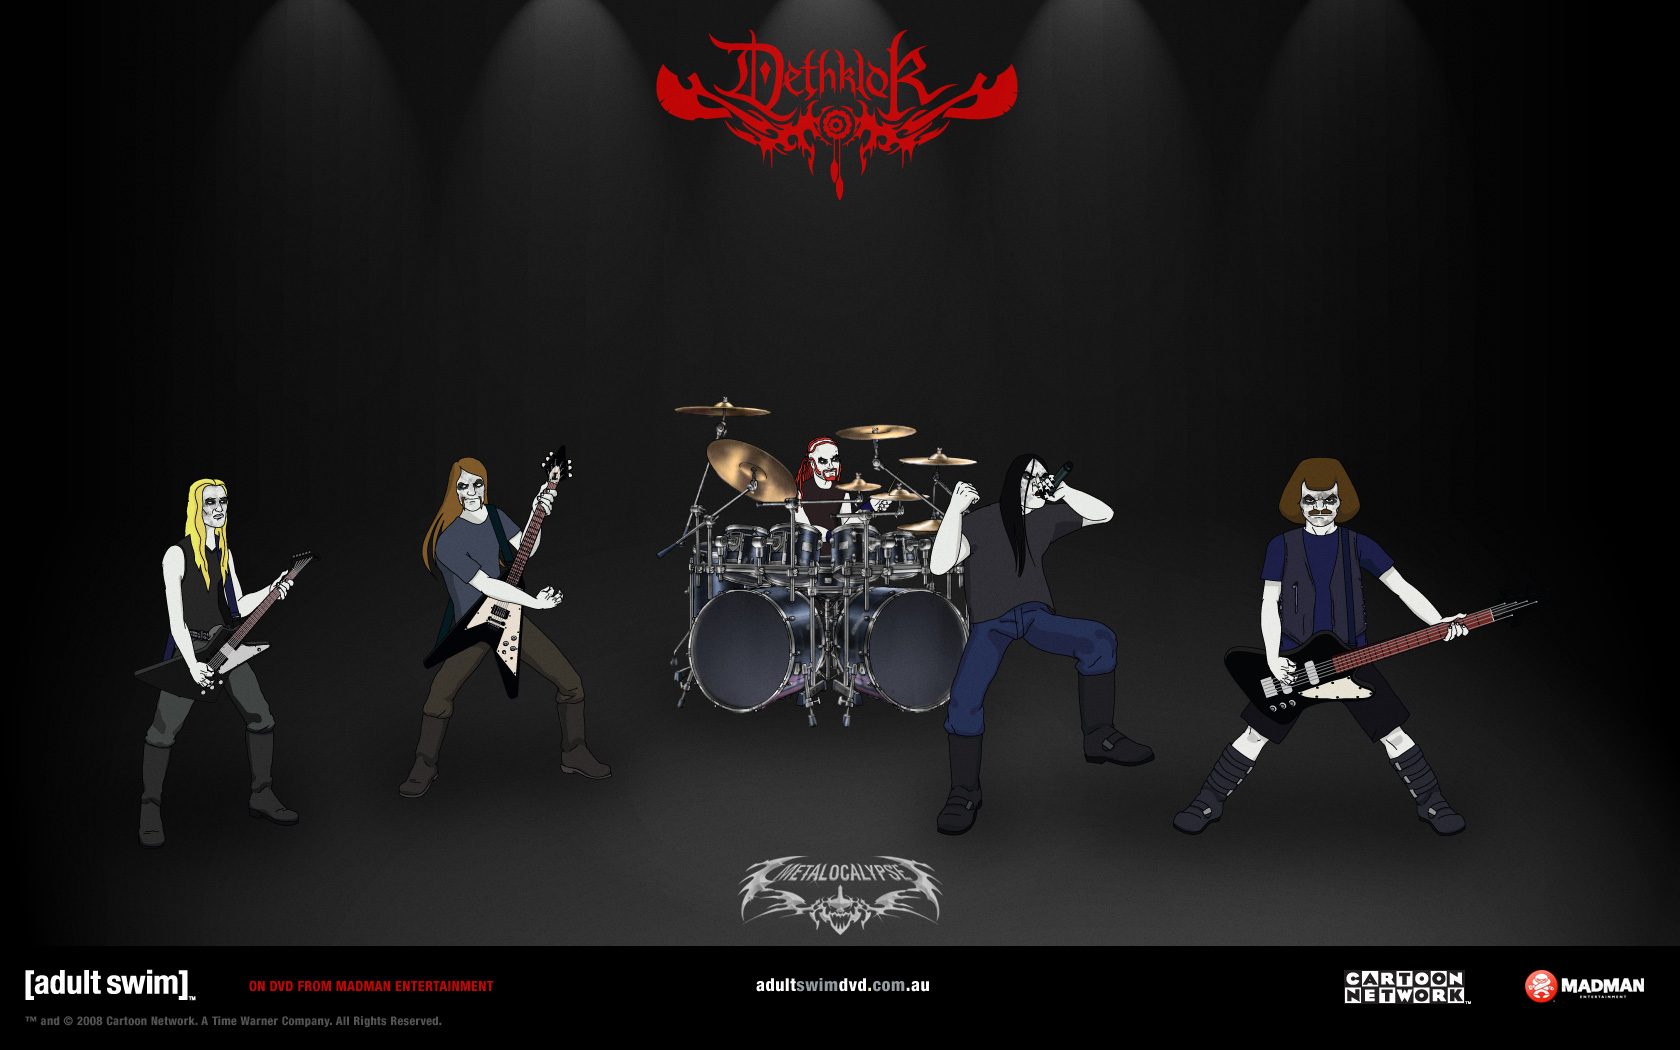 http://www.diefordethklok.ru/downloads/wallpapers/3/metalocalypse_329_1680.jpg